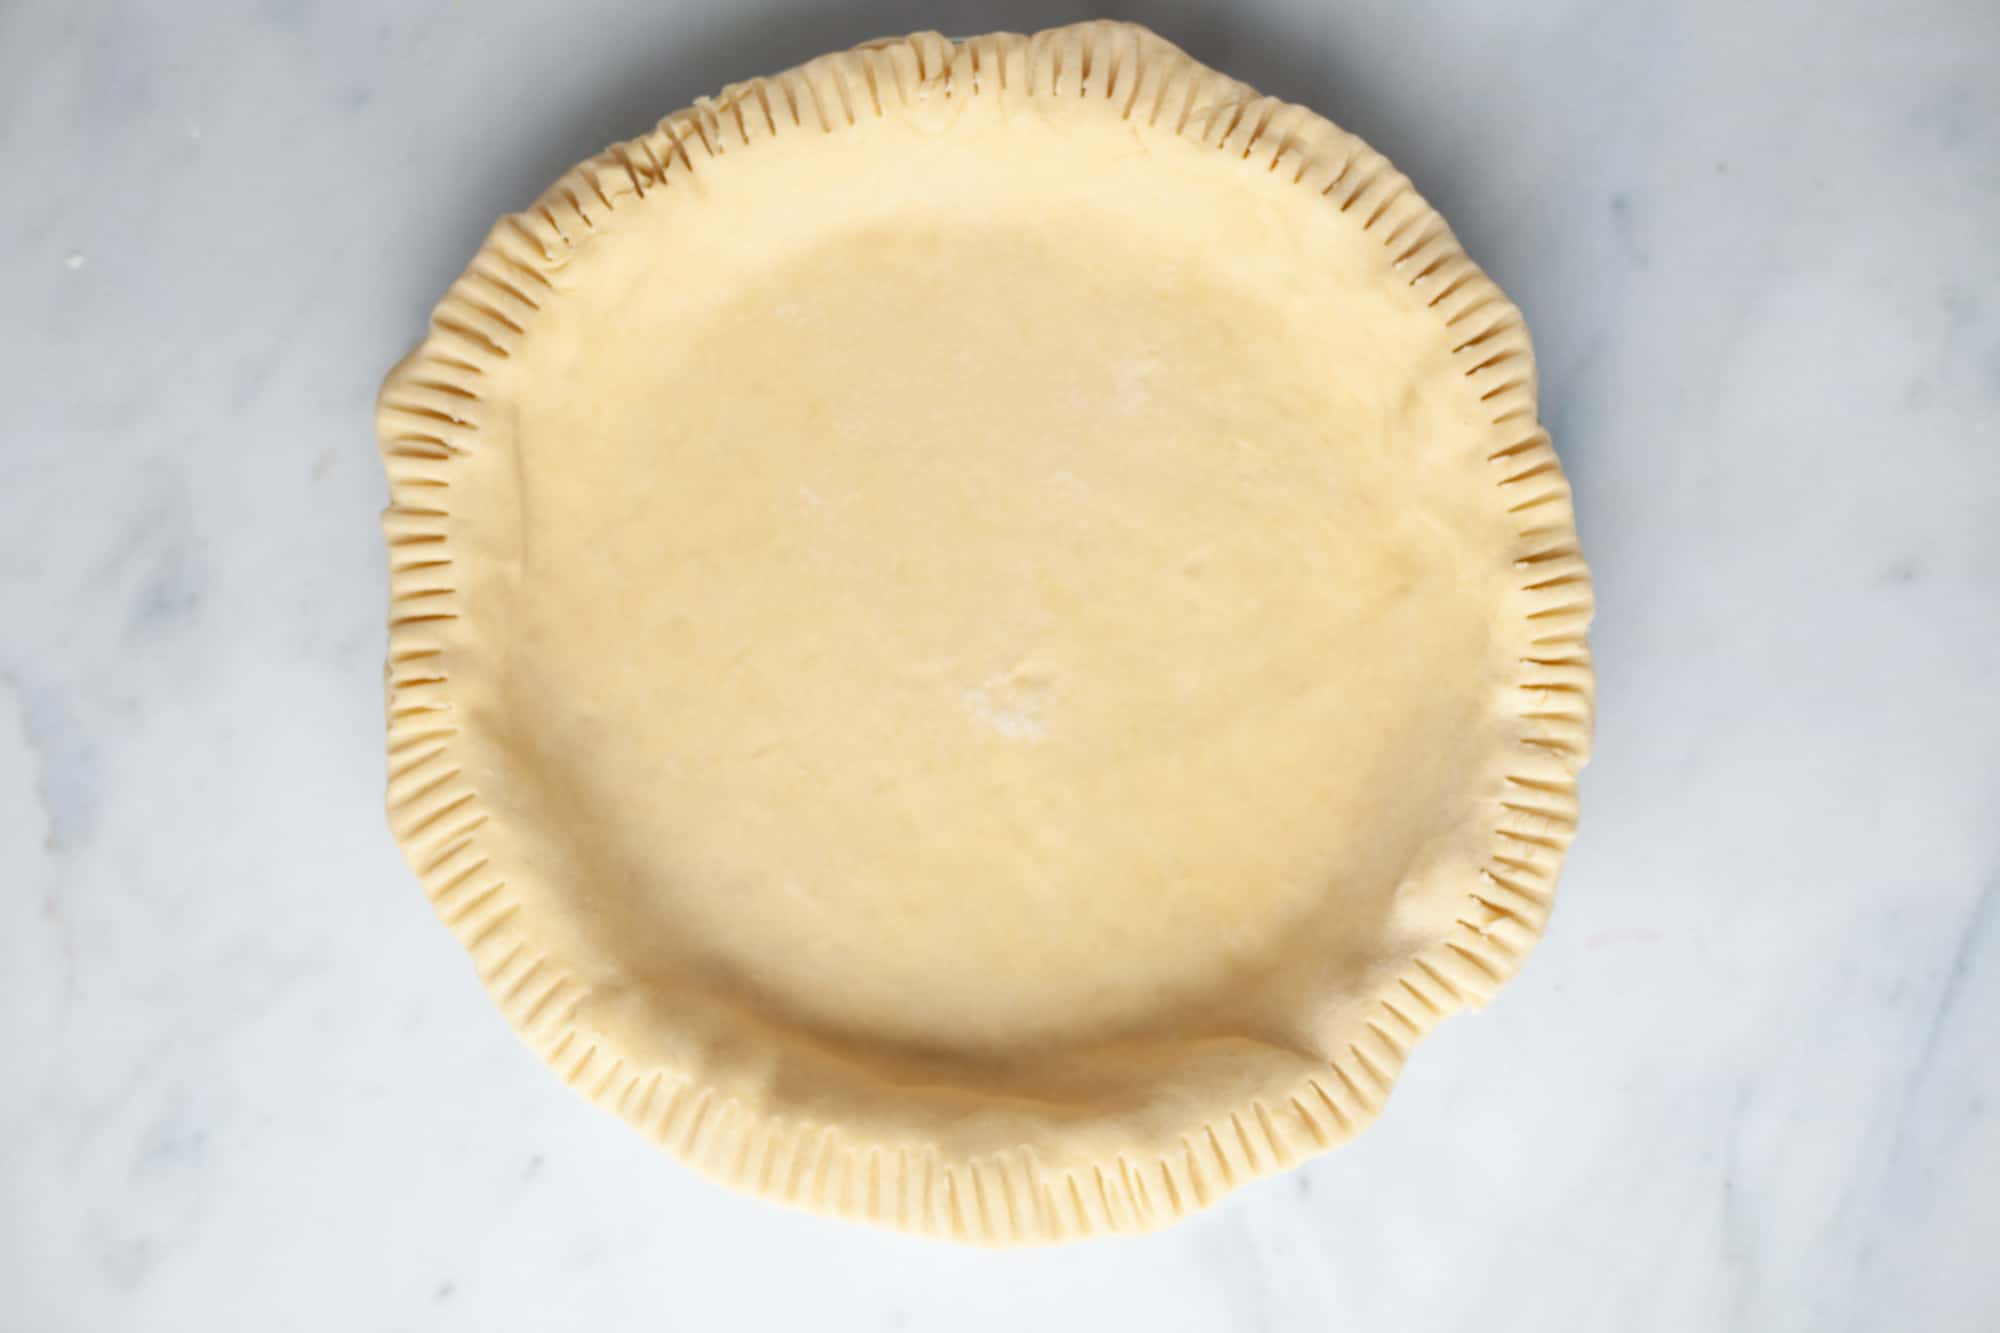 An unbaked pie without a filling